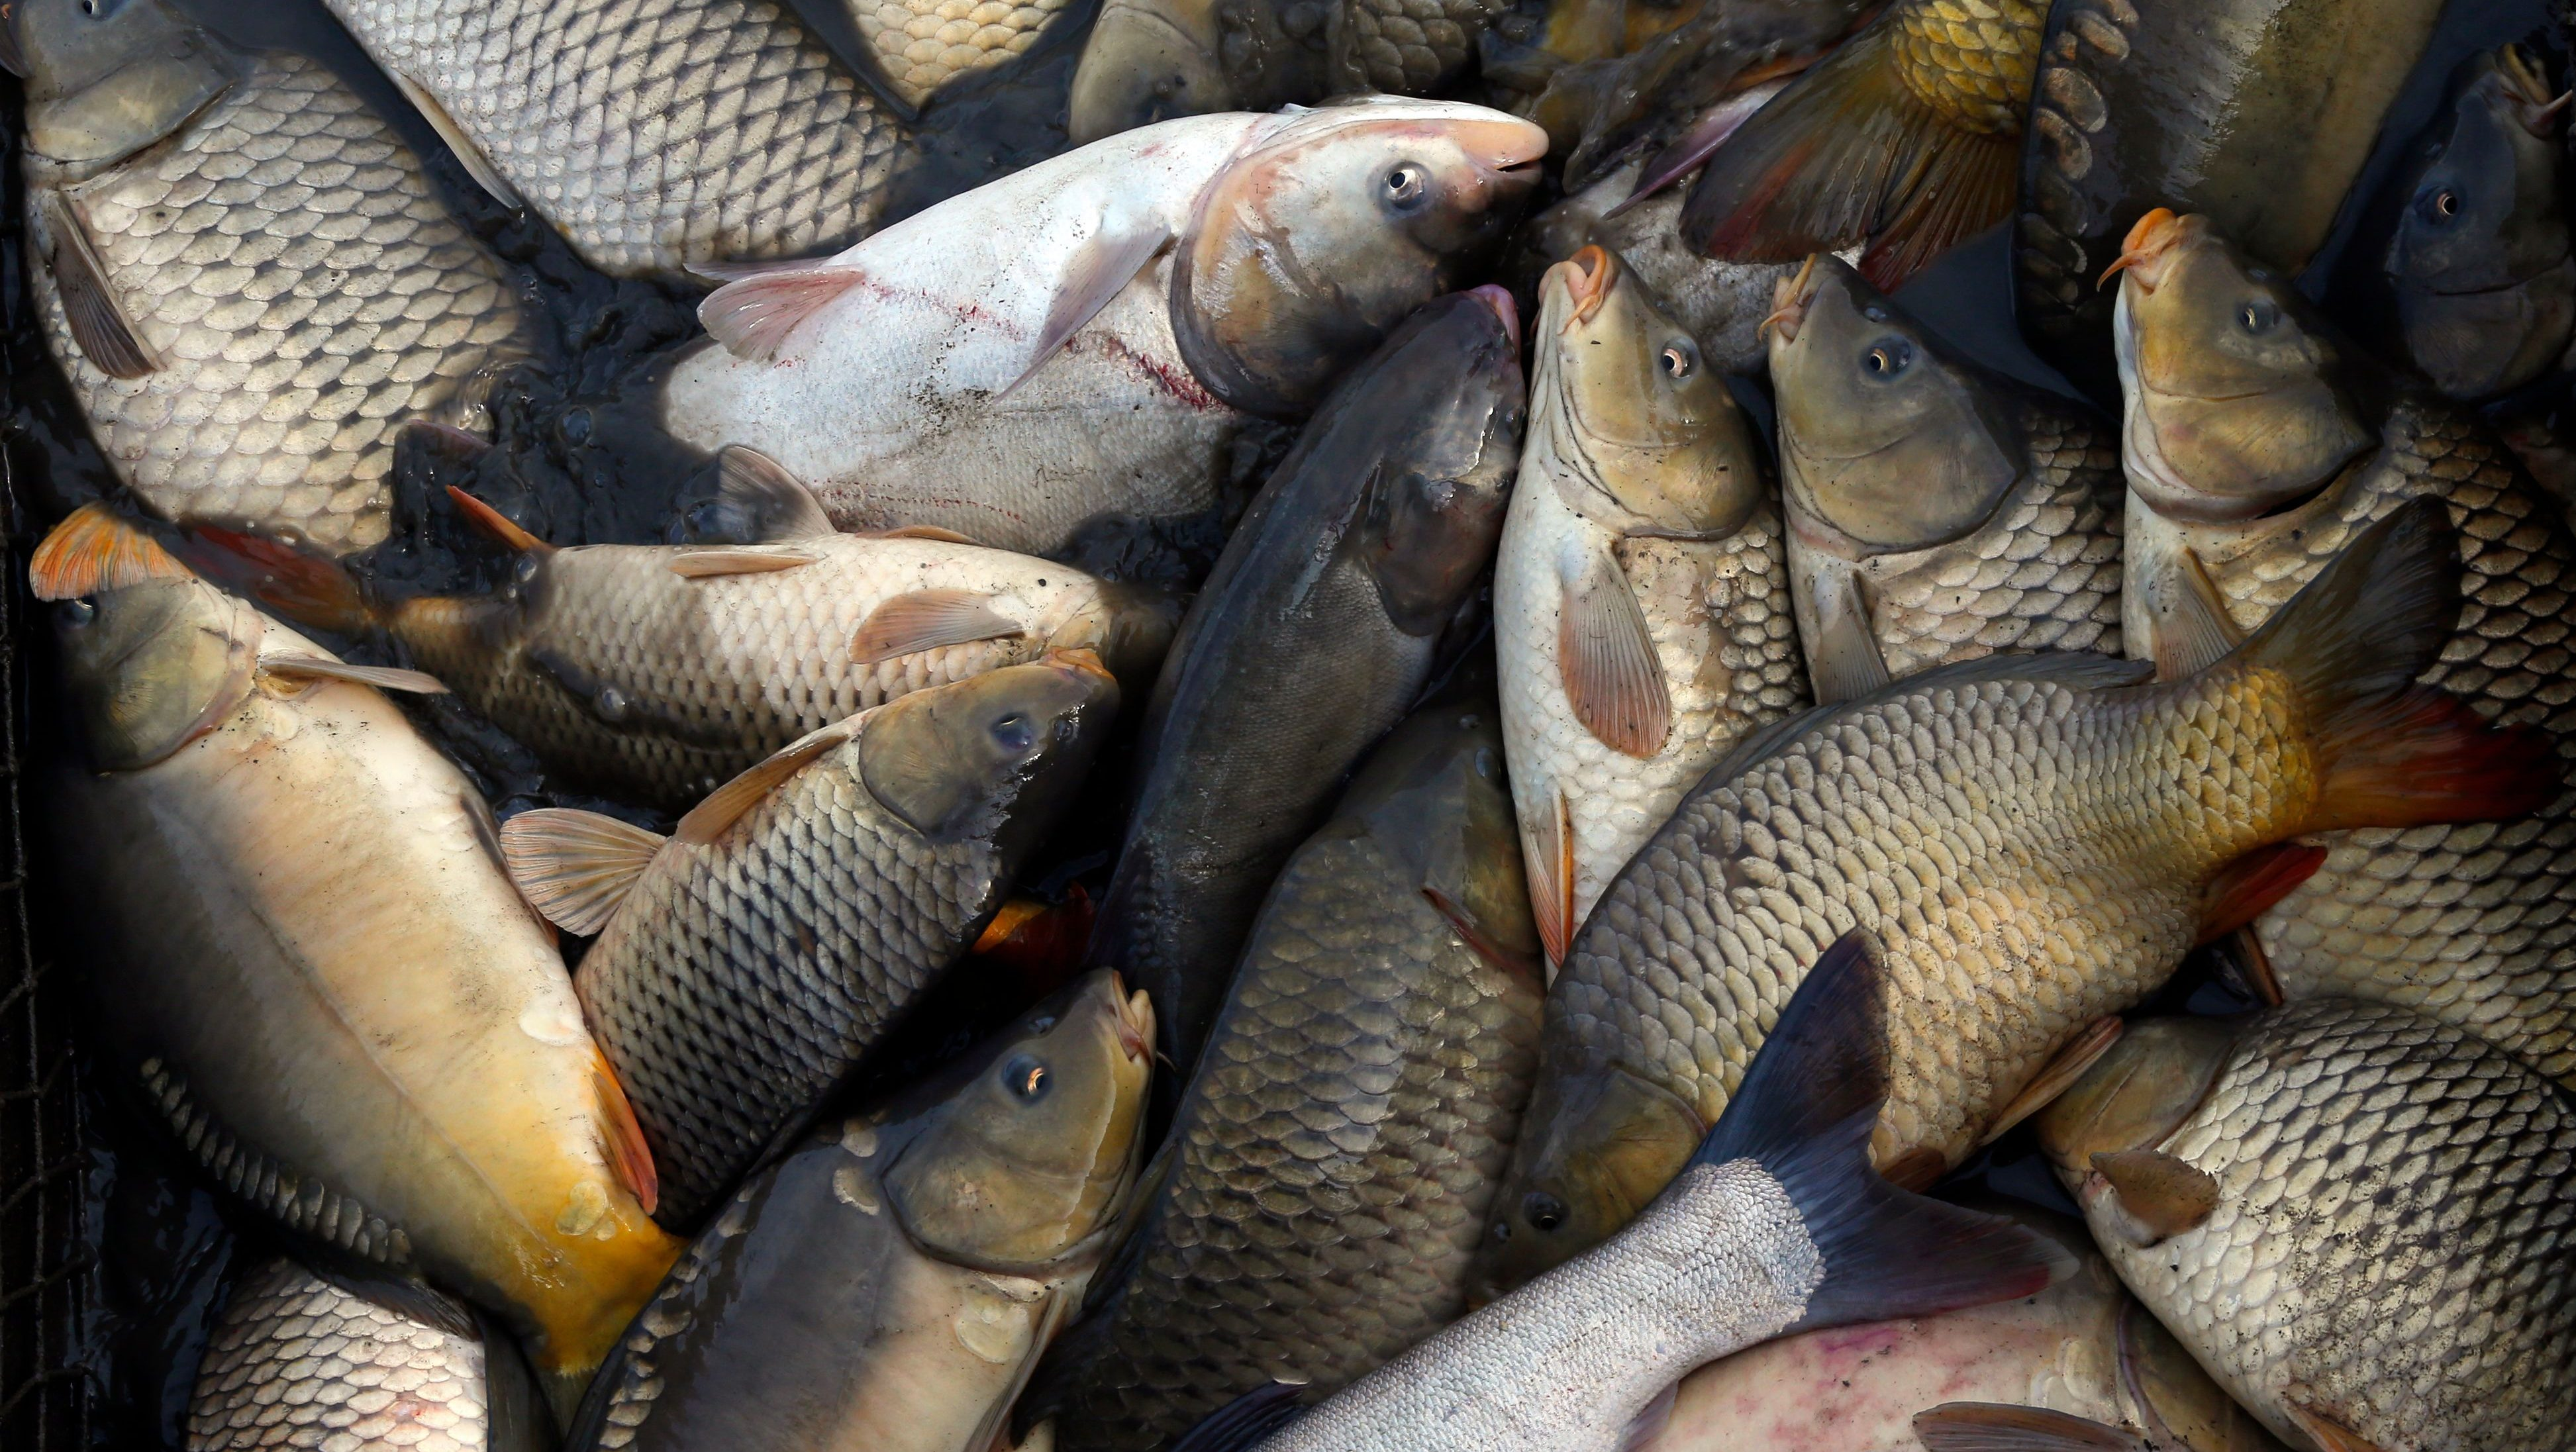 A pile of fish collected from a net is seen during harvesting at one of Europe's biggest freshwater fishing firms in the Great Hungarian plain in Hortobagy, east from Budapest November 6, 2014. Picture taken on November 6, 2014. REUTERS/Laszlo Balogh (HUNGARY  - Tags: ANIMALS ENVIRONMENT FOOD)   - LR1EAB70SHJ8B